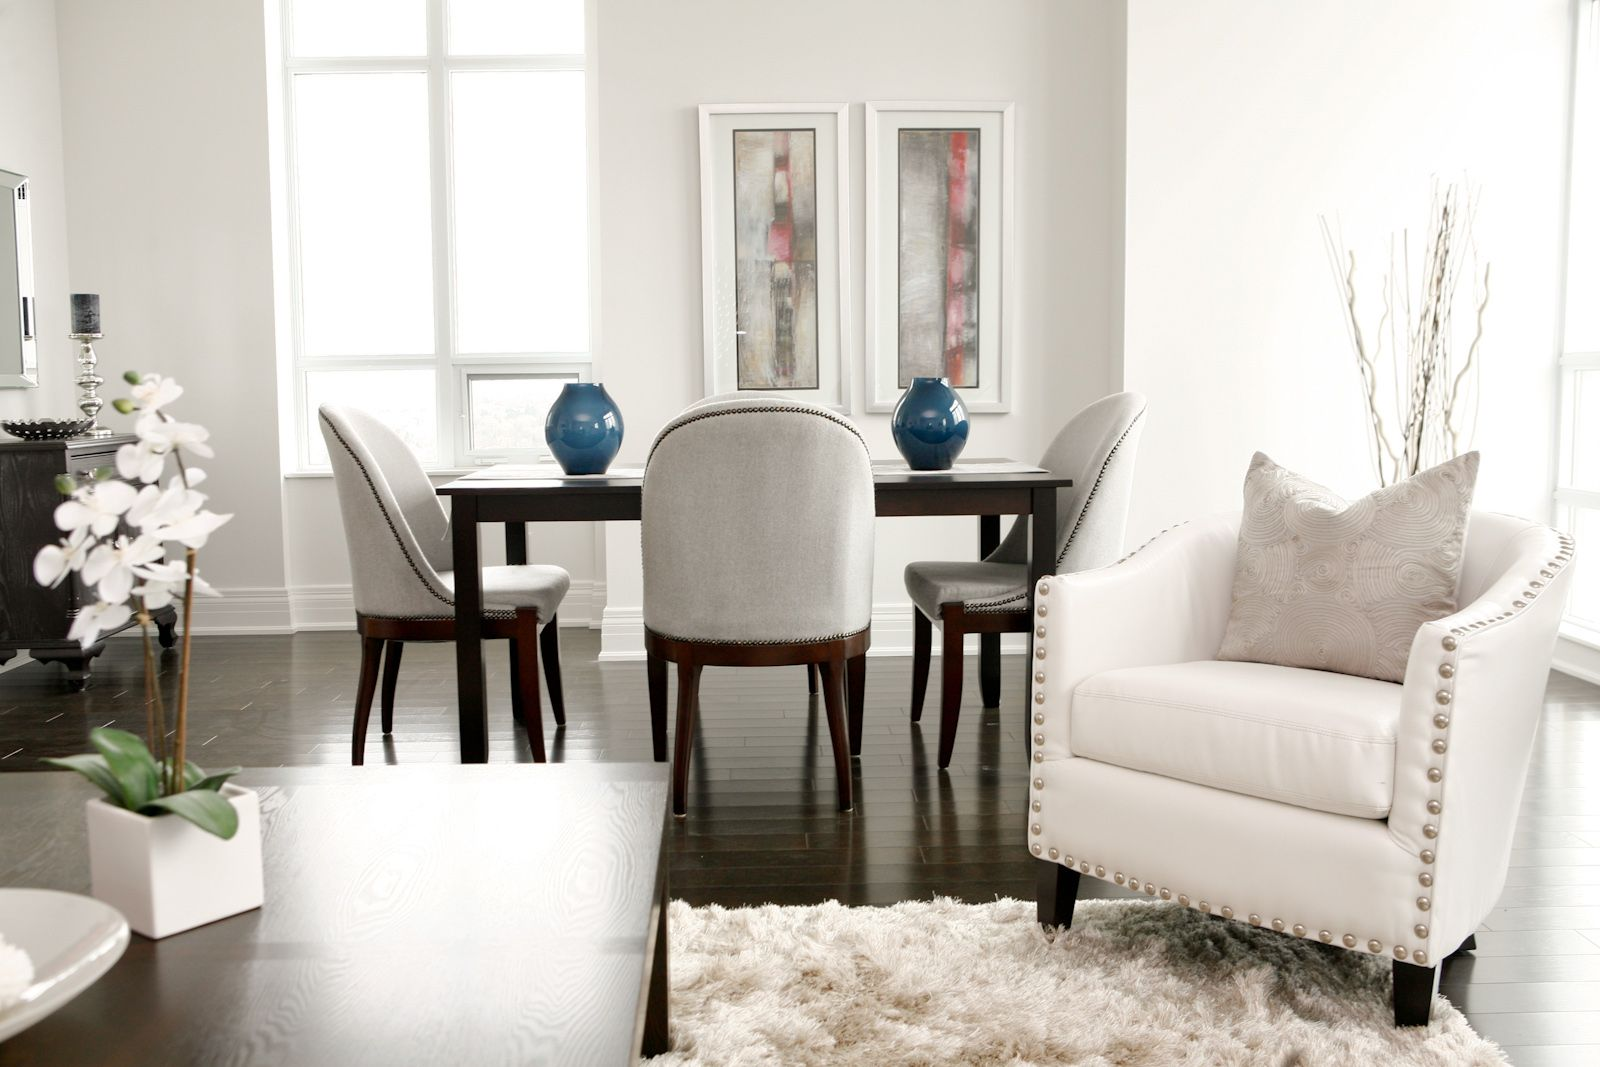 10 Furniture Buying Rules For Better Home Staging When You Need to ...